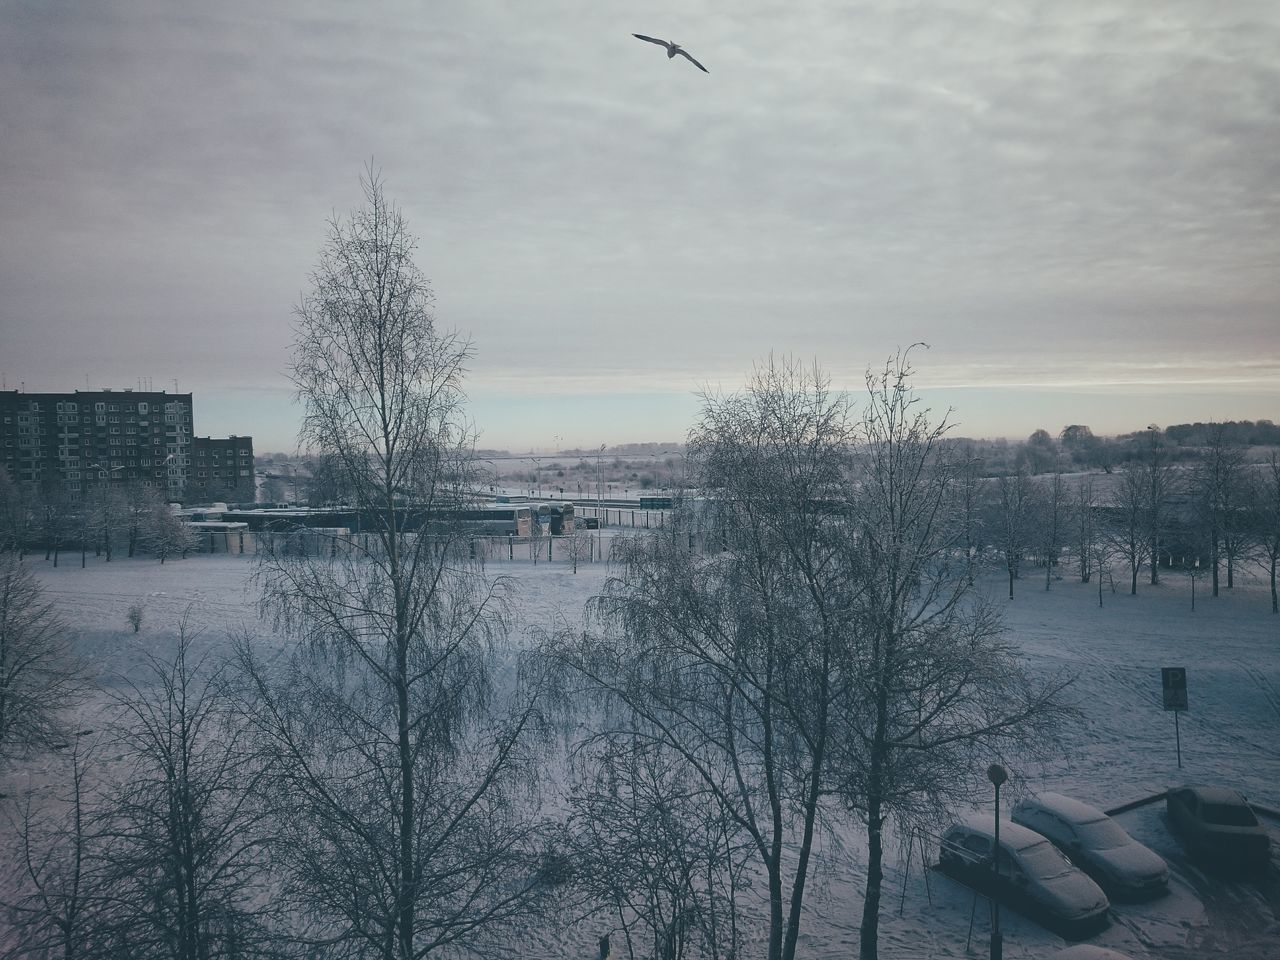 XPERIA Xperiaphotography Xmas First Snow Morning View VSCO Snow Day Bird In Sky Flying Bird Sky Animal Themes Cloud - Sky Sunset Outdoors Nature Flock Of Birds No People Large Group Of Animals Day Cityscape